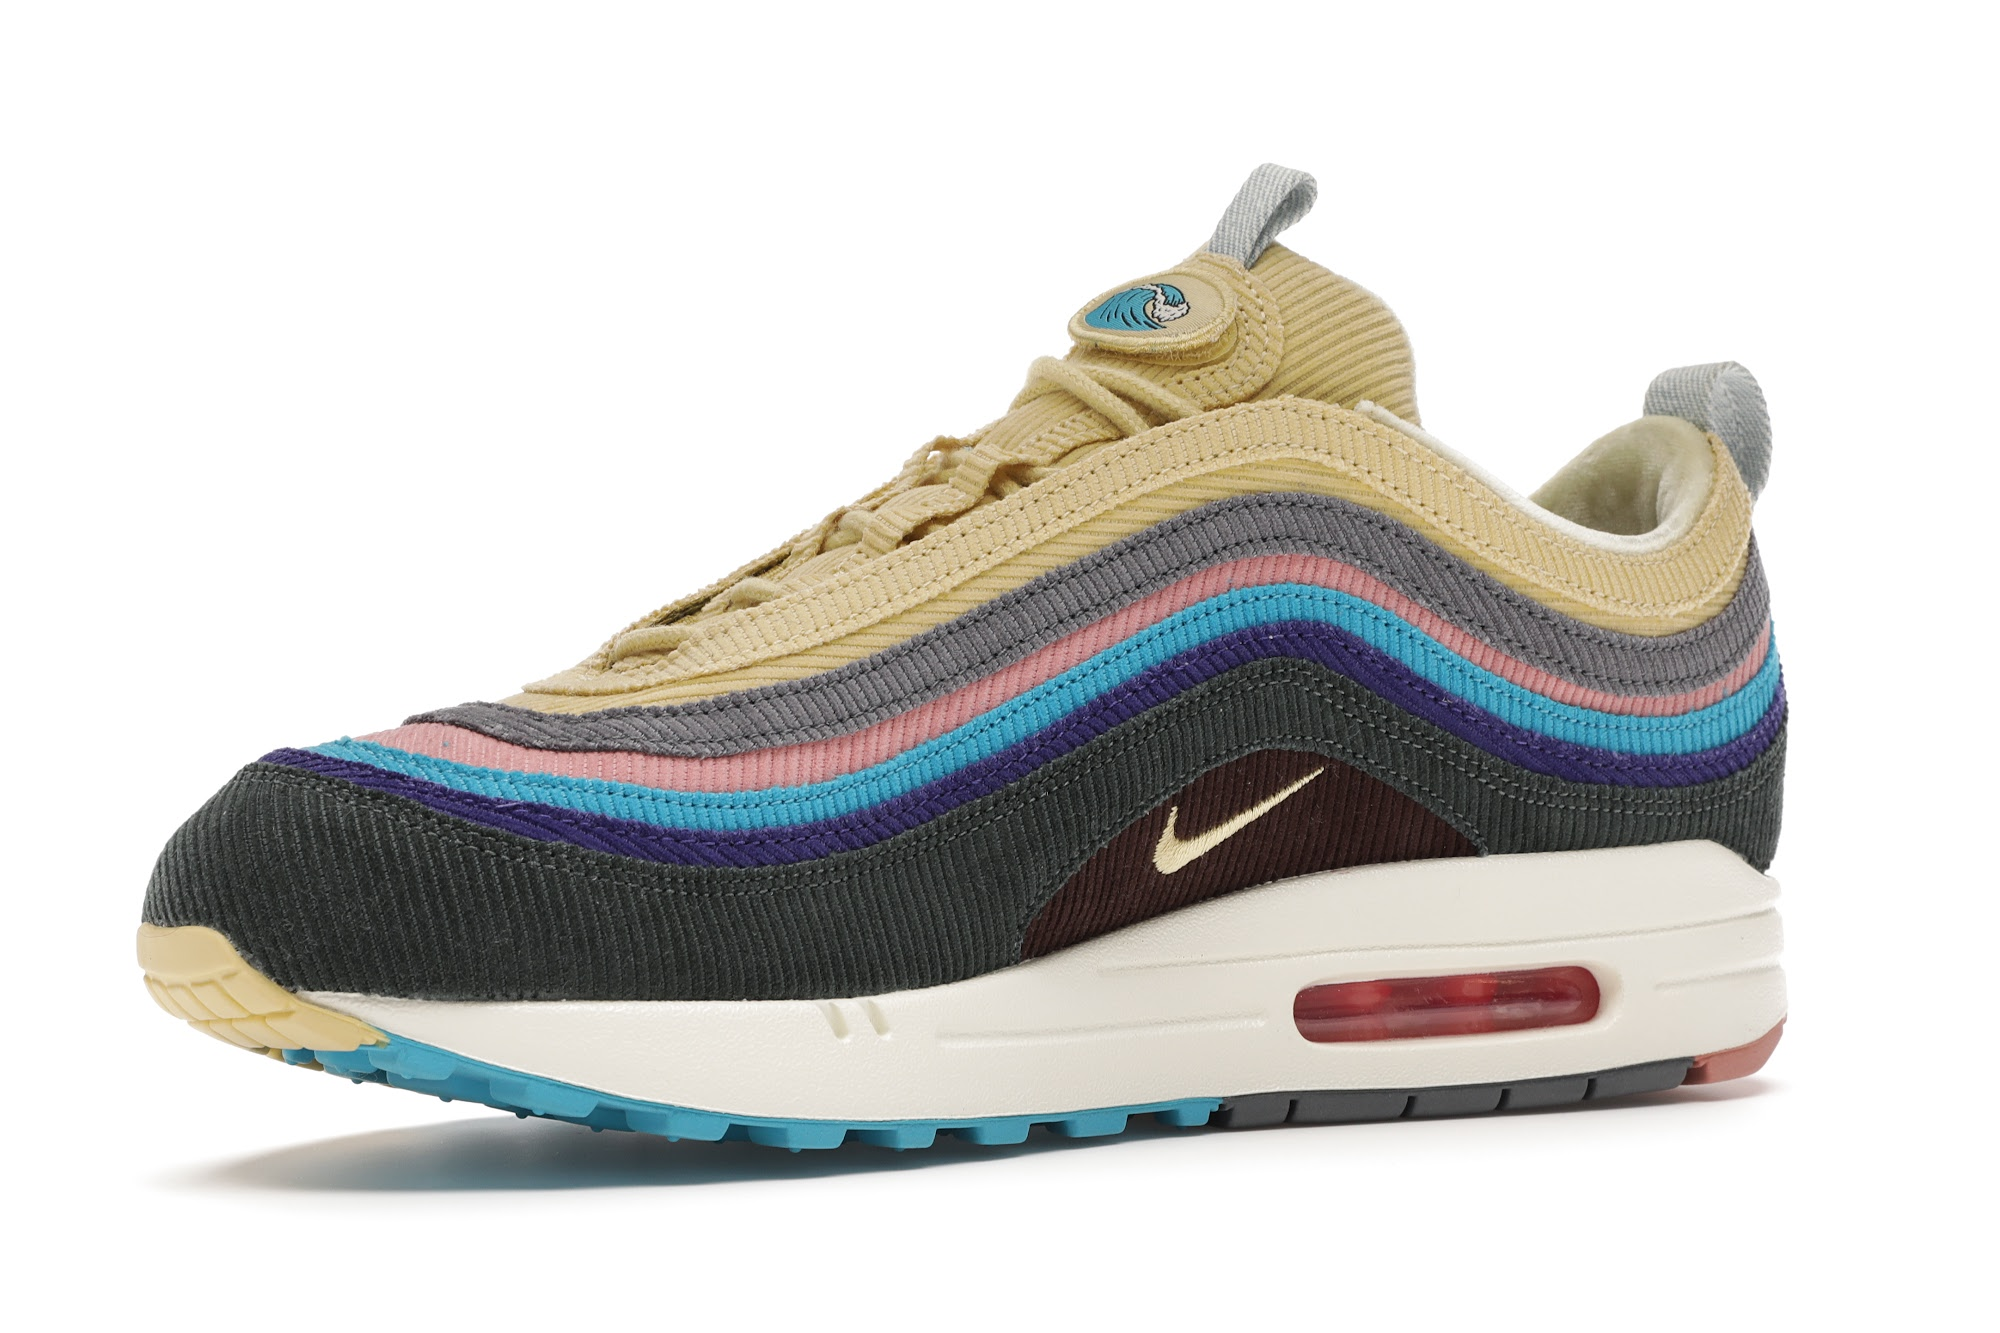 Nike Air Max 1/97 Sean Wotherspoon (All Accessories and Dustbag)